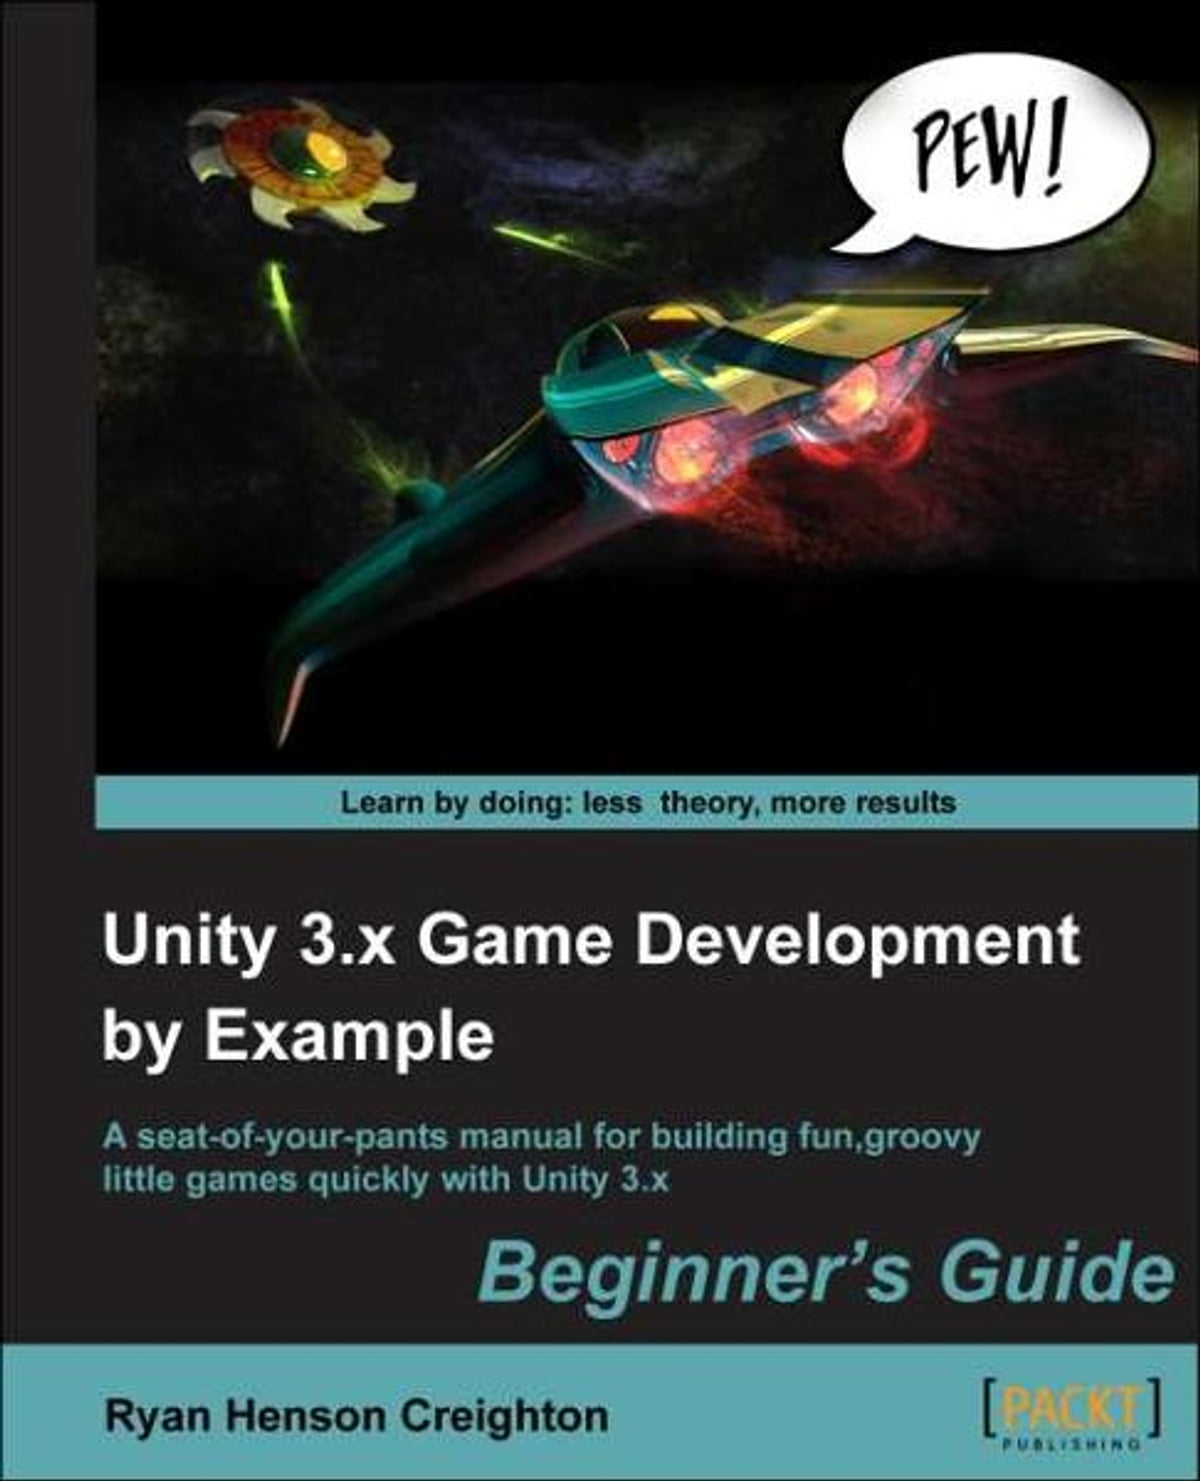 unity 4 x game development by example beginner s guide creighton ryan henson